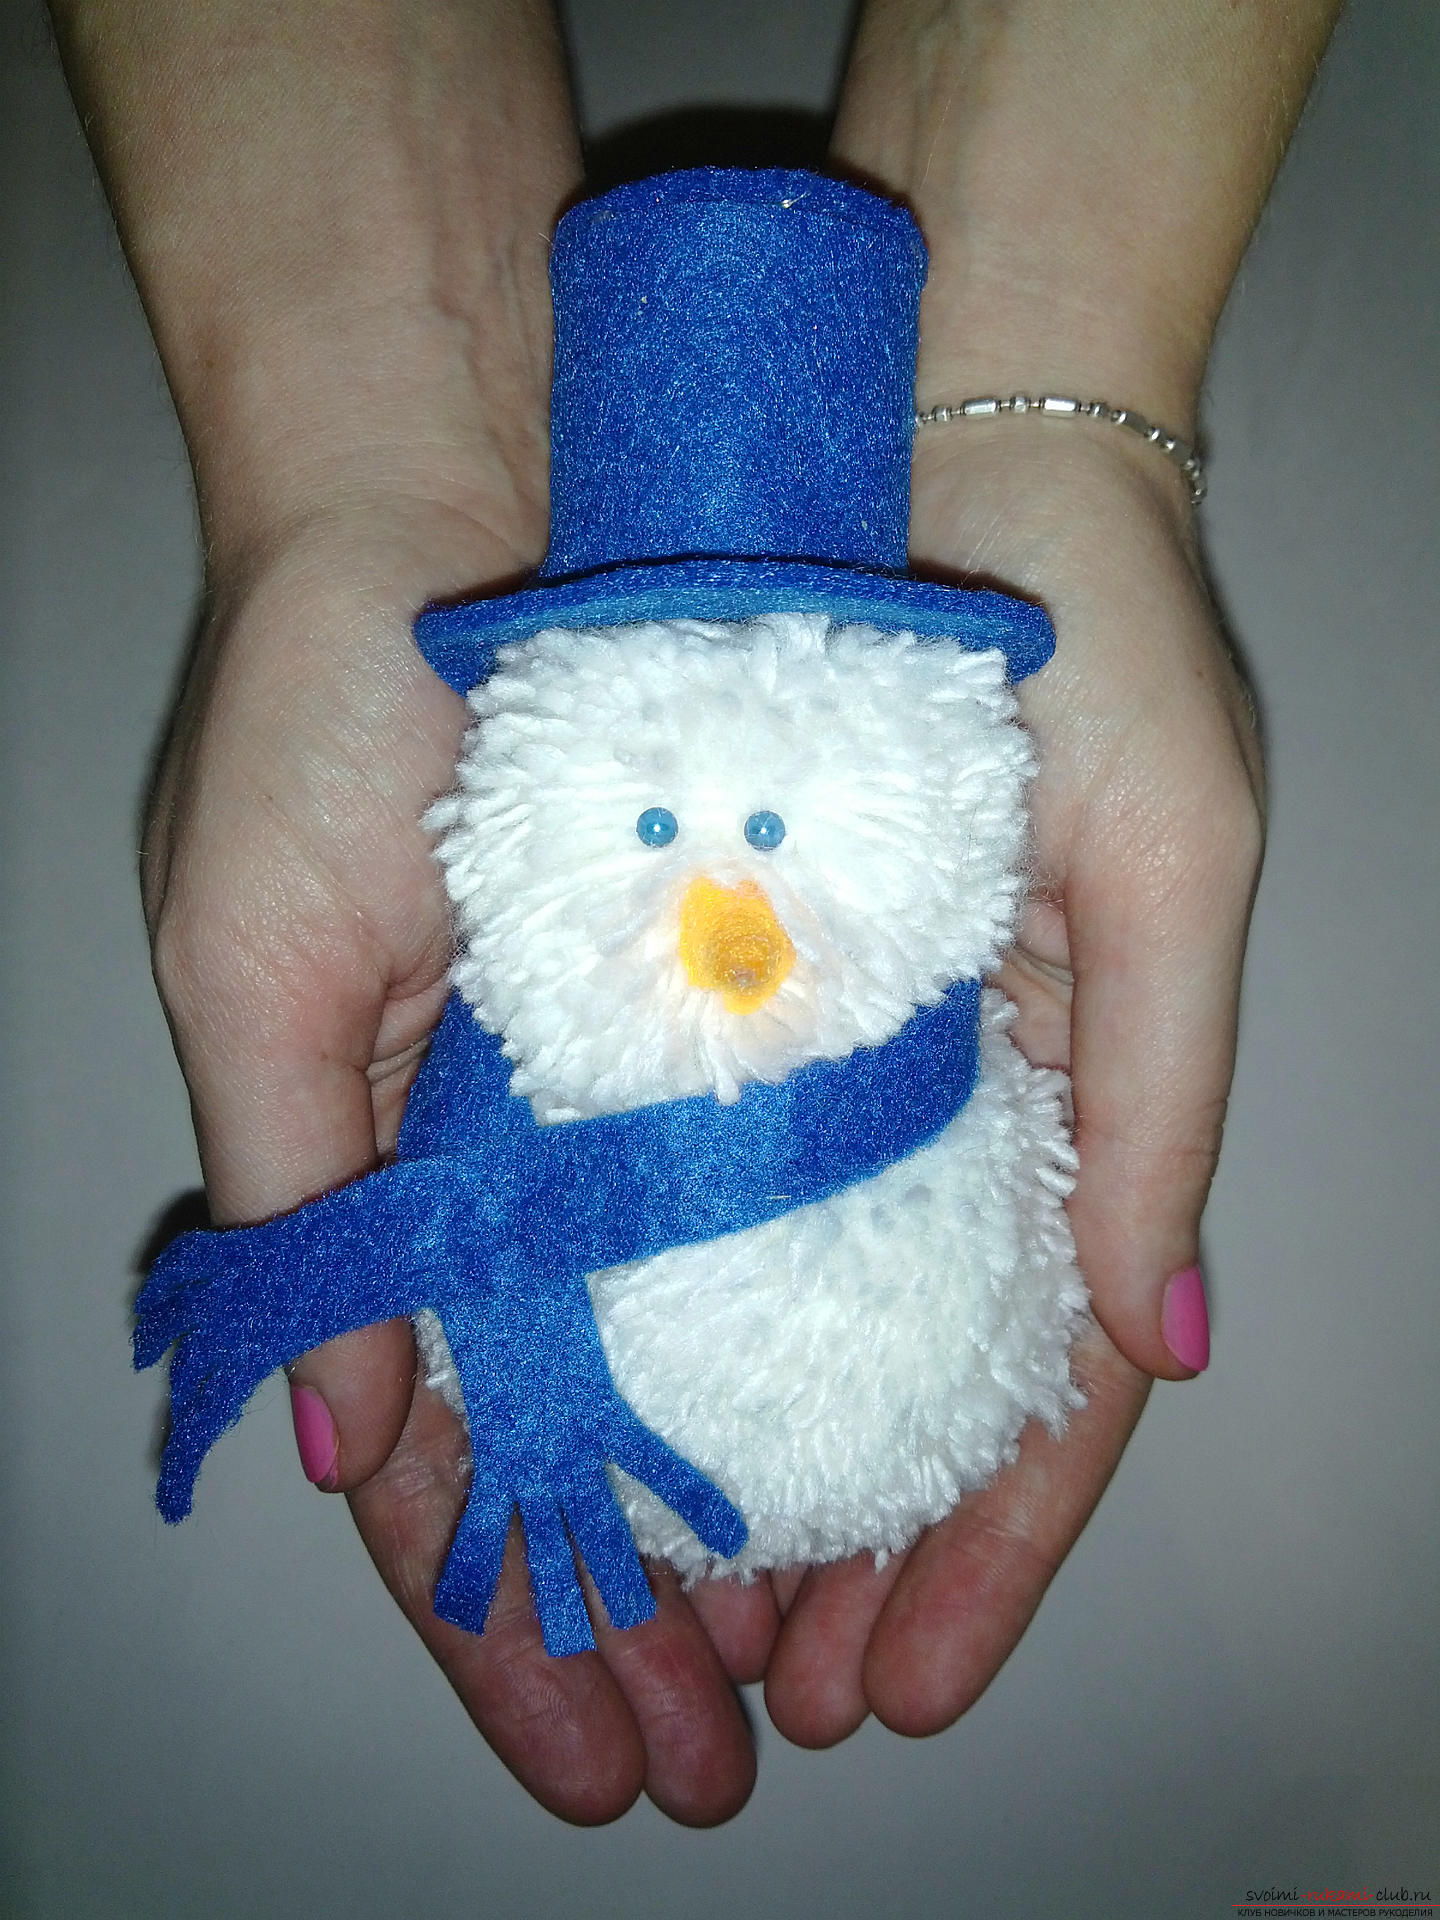 A master class with photo and description will tell you how to make a snowman with your own hands. Photo №1